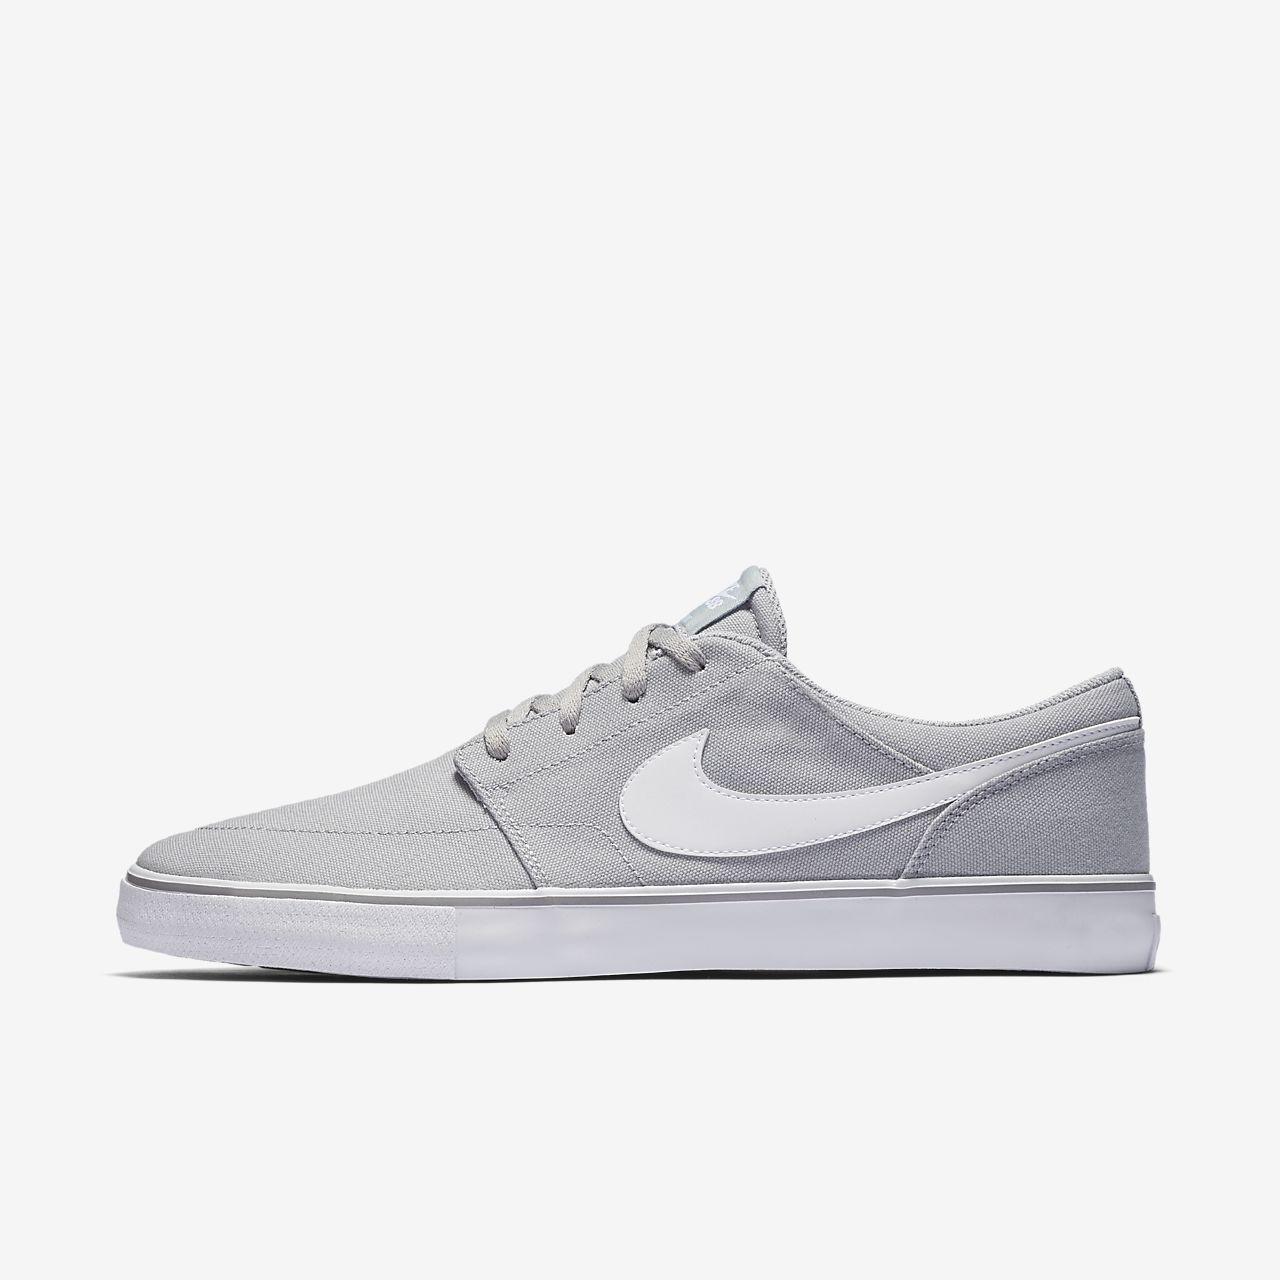 buy popular 4a56f 757d6 ... Nike SB Solarsoft Portmore 2 Skate Shoe